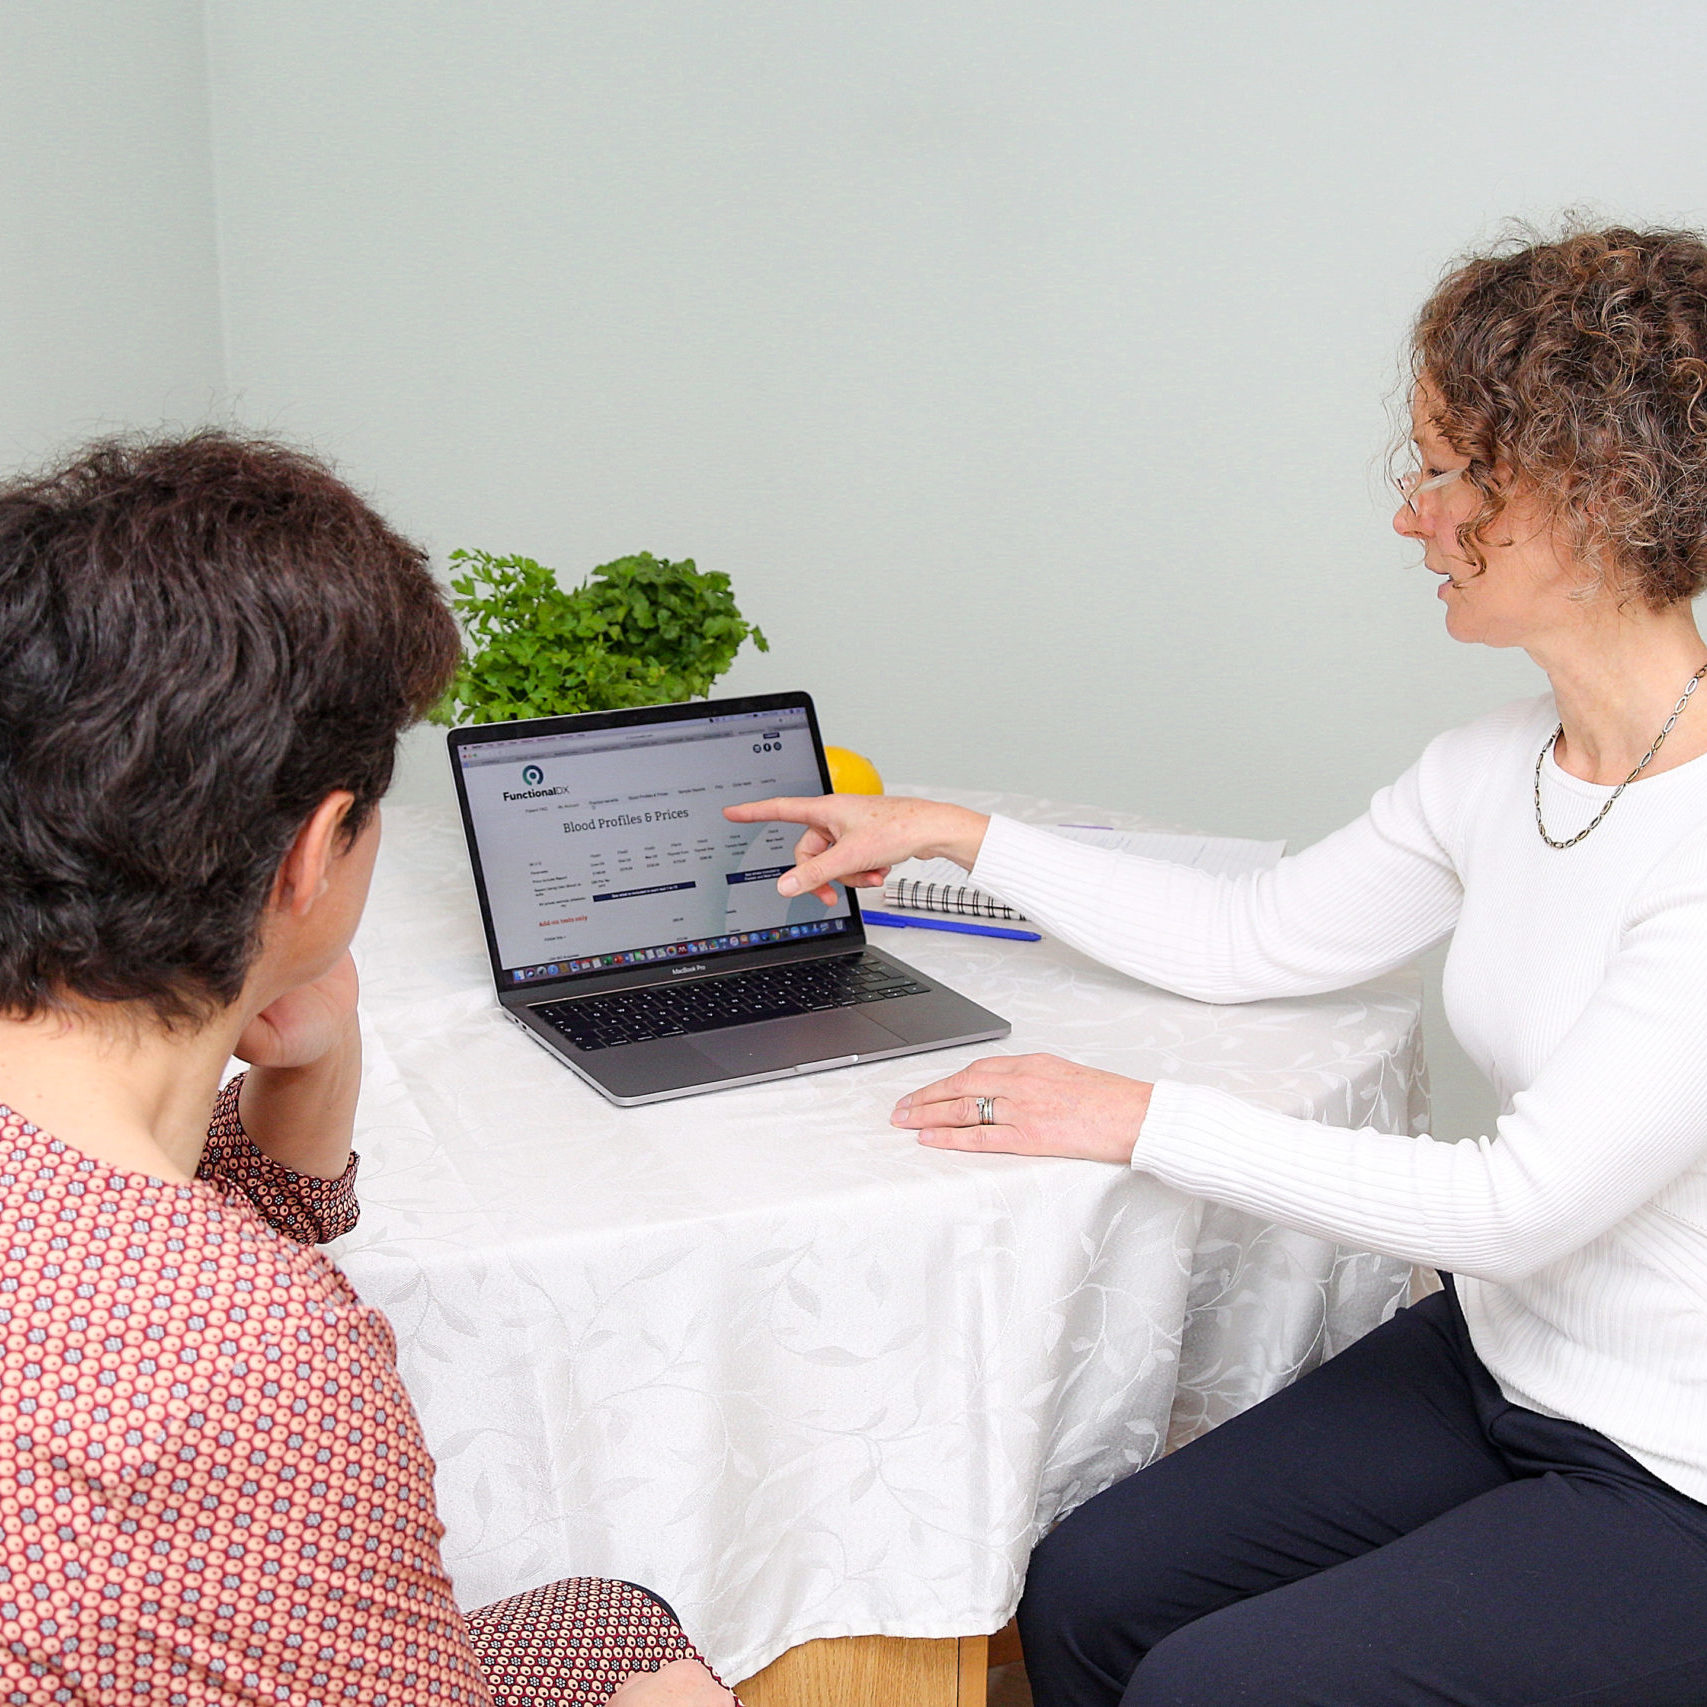 Nutrition advice for pain and digestive health in Cambridge, Perthshire and online